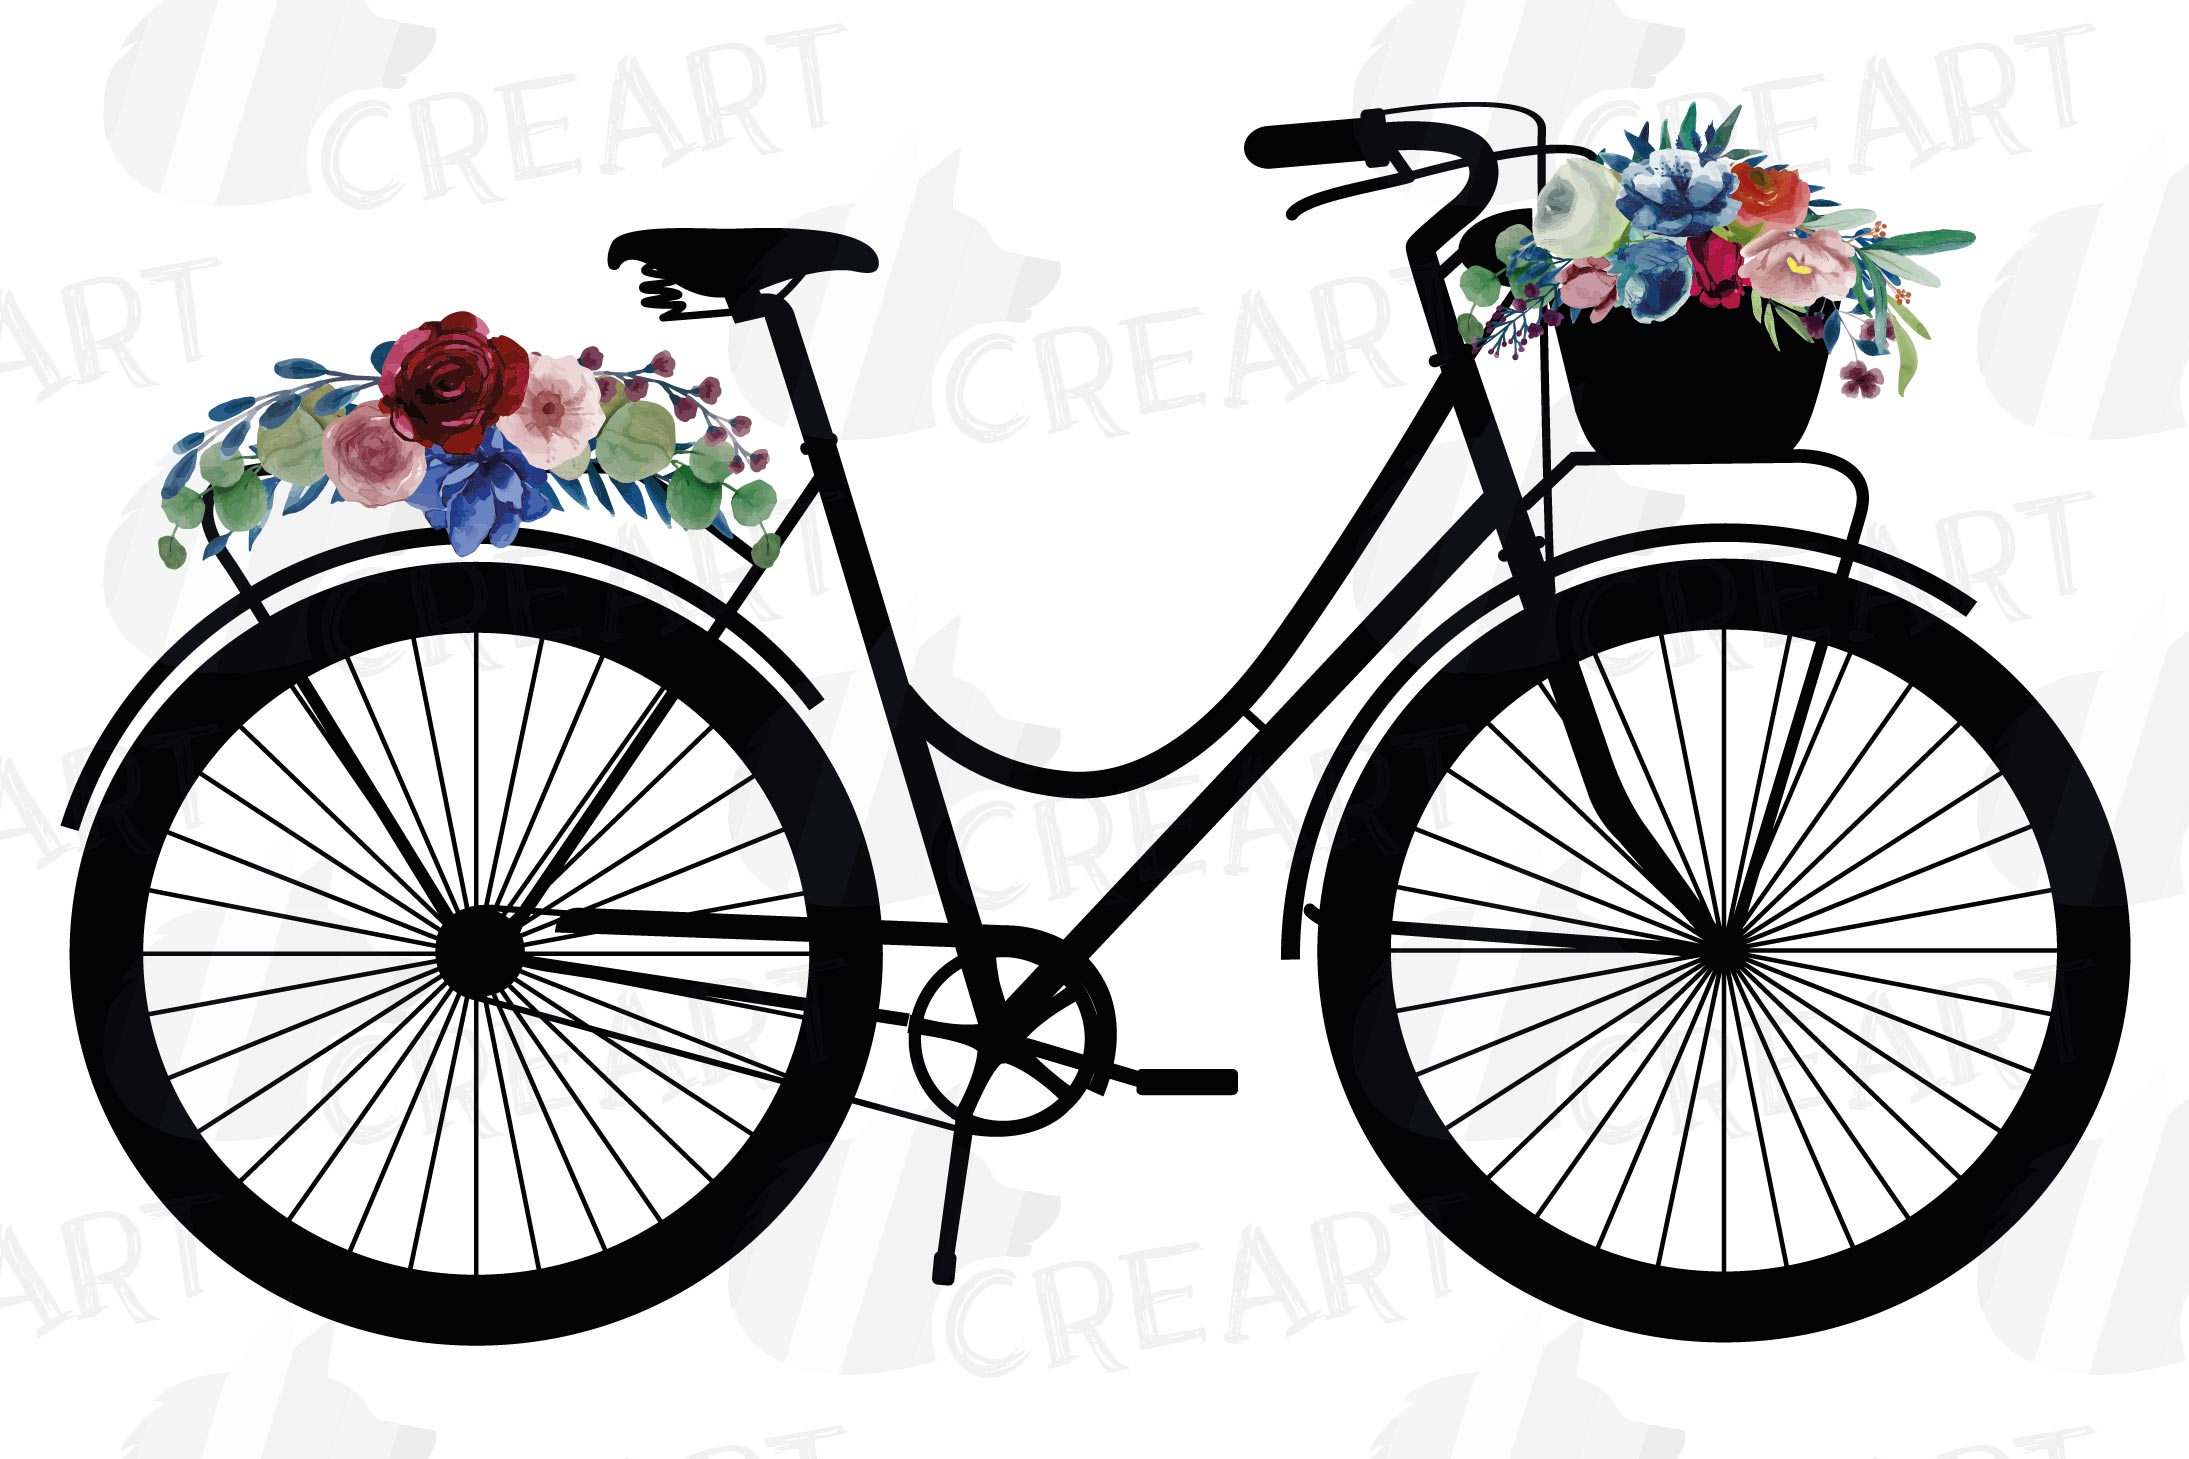 Floral bicycles with watercolor bouquets decoration clip art example image 3